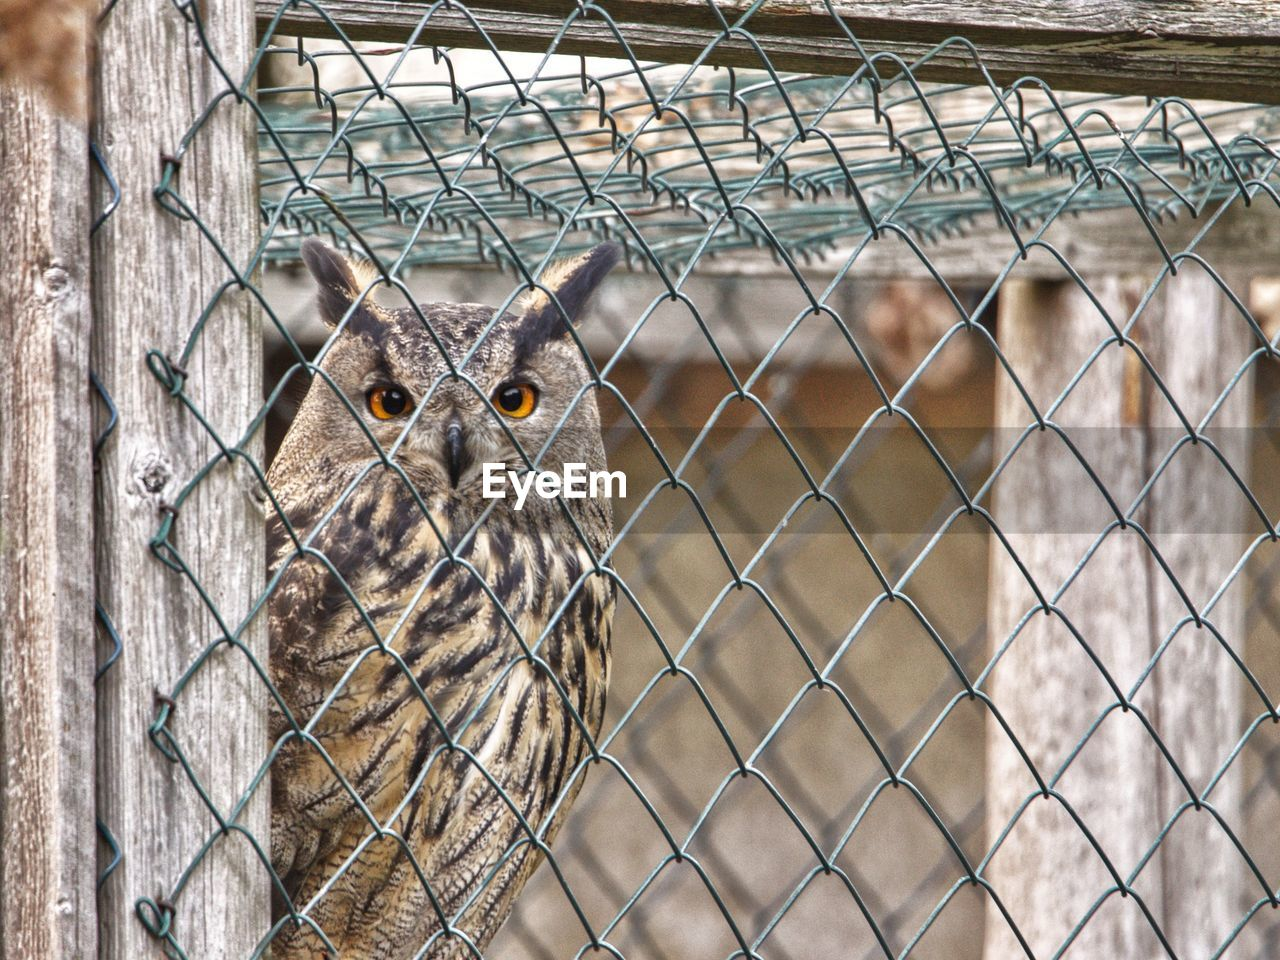 fence, one animal, animal themes, animal, boundary, barrier, chainlink fence, vertebrate, protection, cage, mammal, security, looking at camera, no people, safety, animals in captivity, portrait, metal, zoo, animal wildlife, outdoors, animal eye, animal head